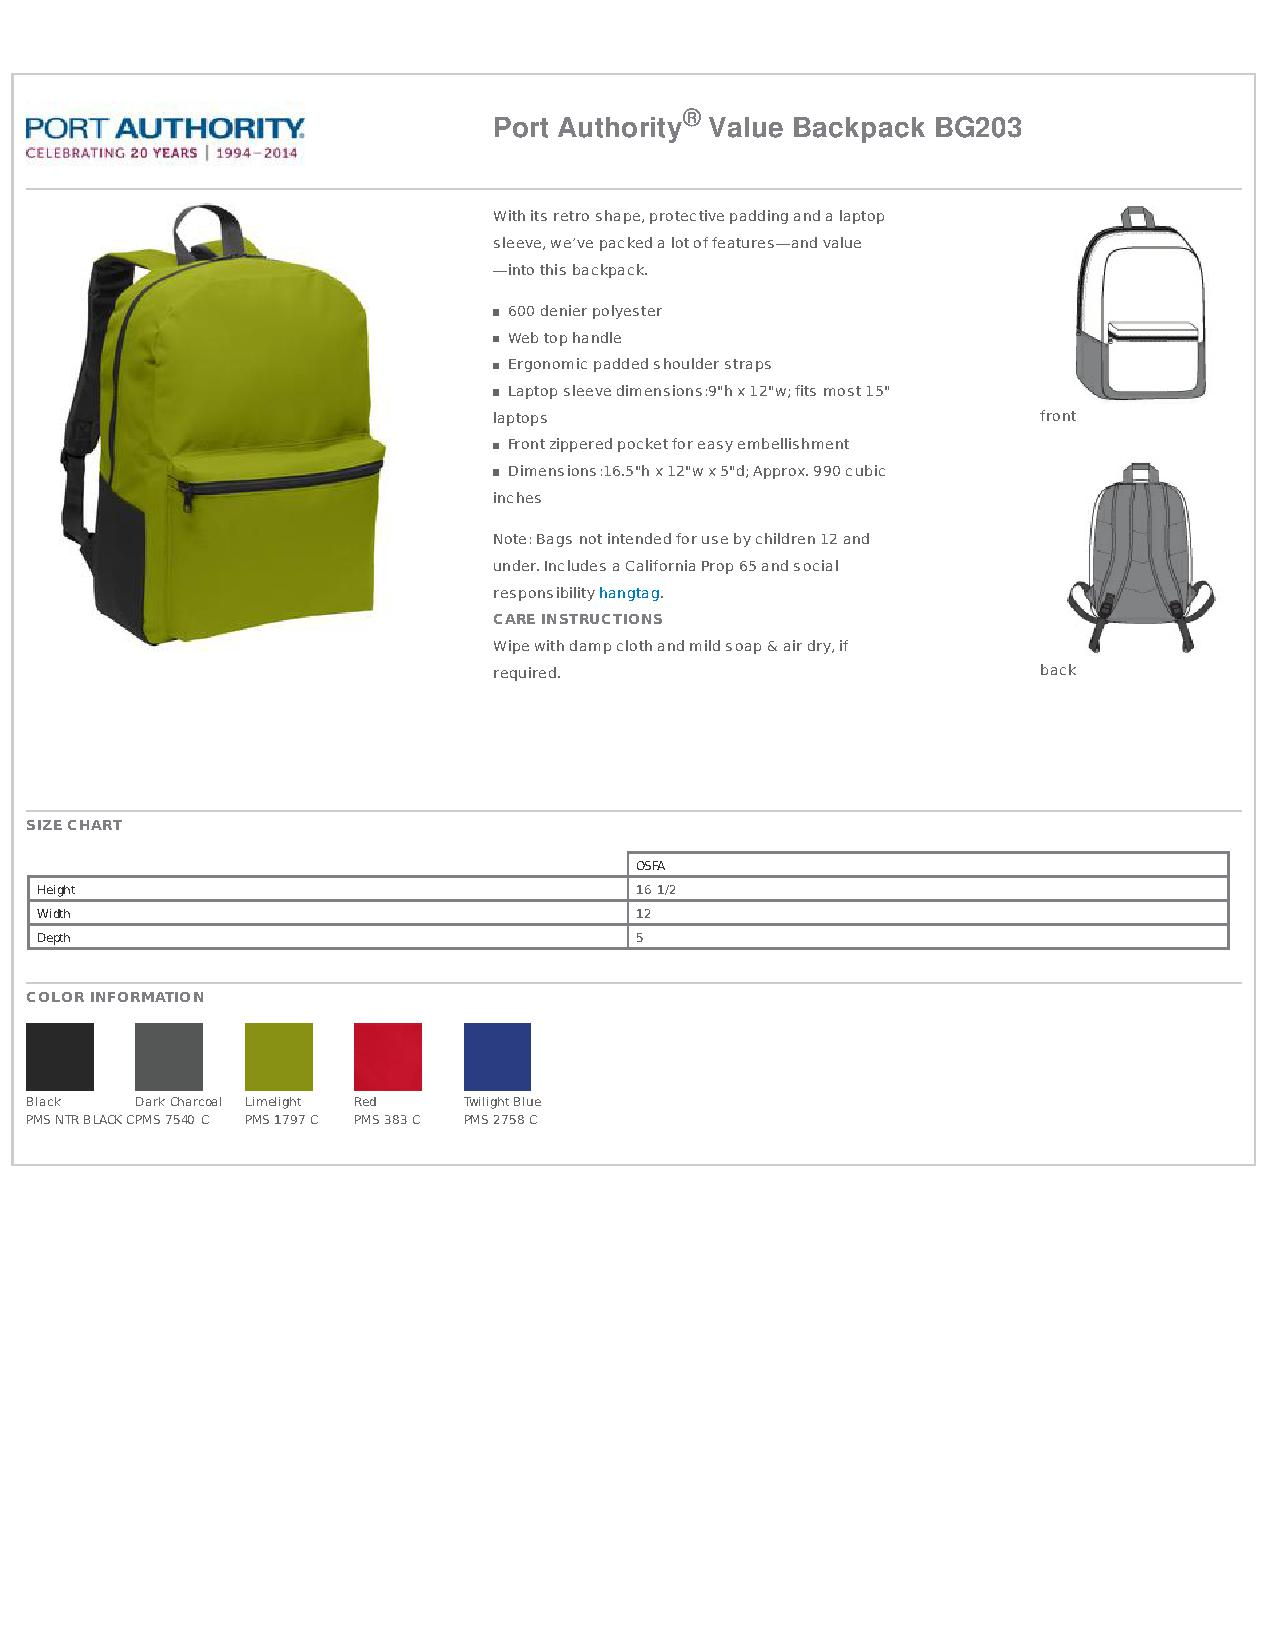 Port Authority BG203 Value Backpack - Bags